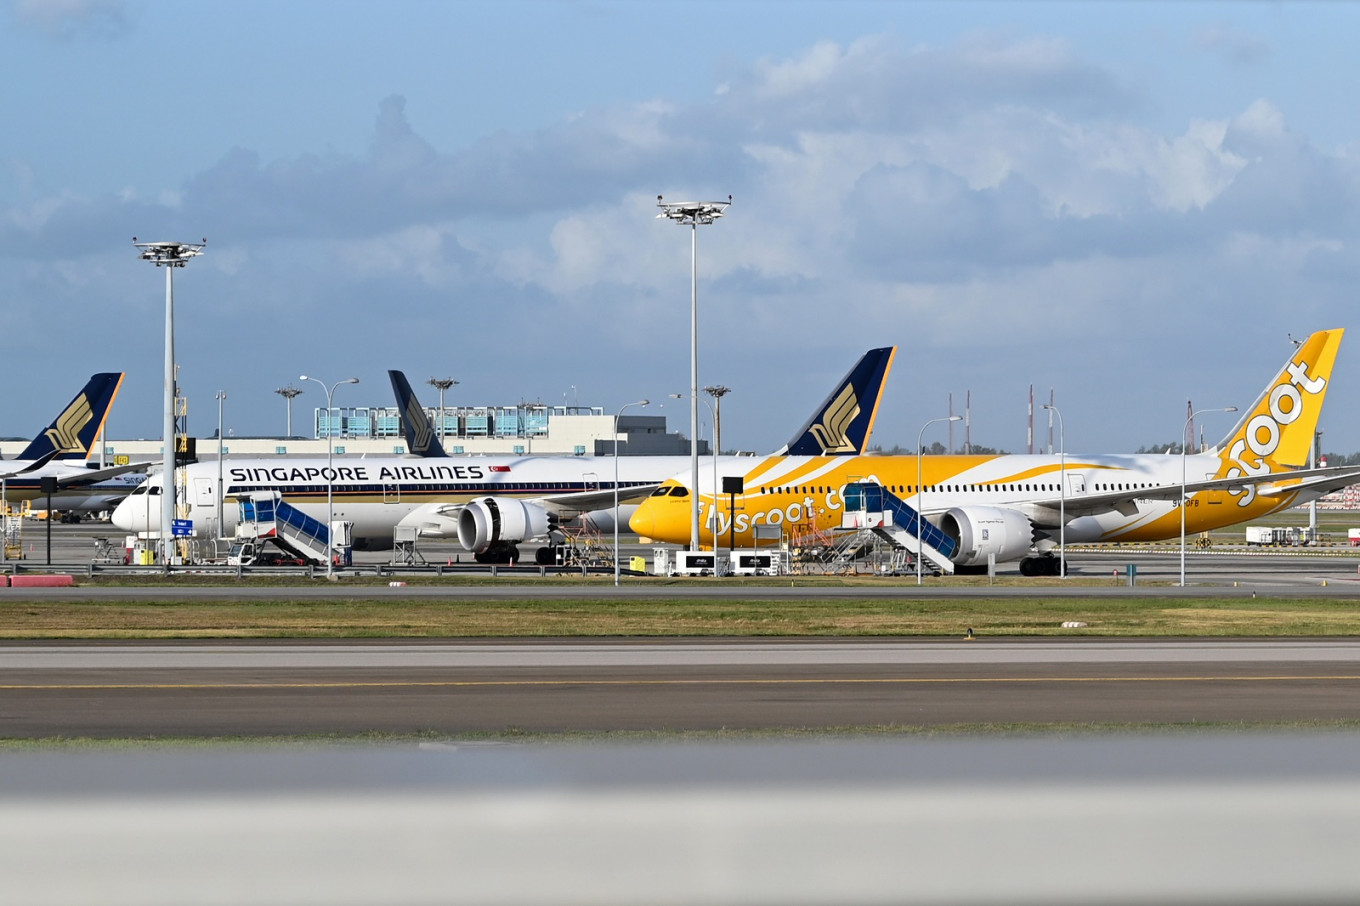 Planes grounded by COVID-19 kept in tip-top shape at Changi